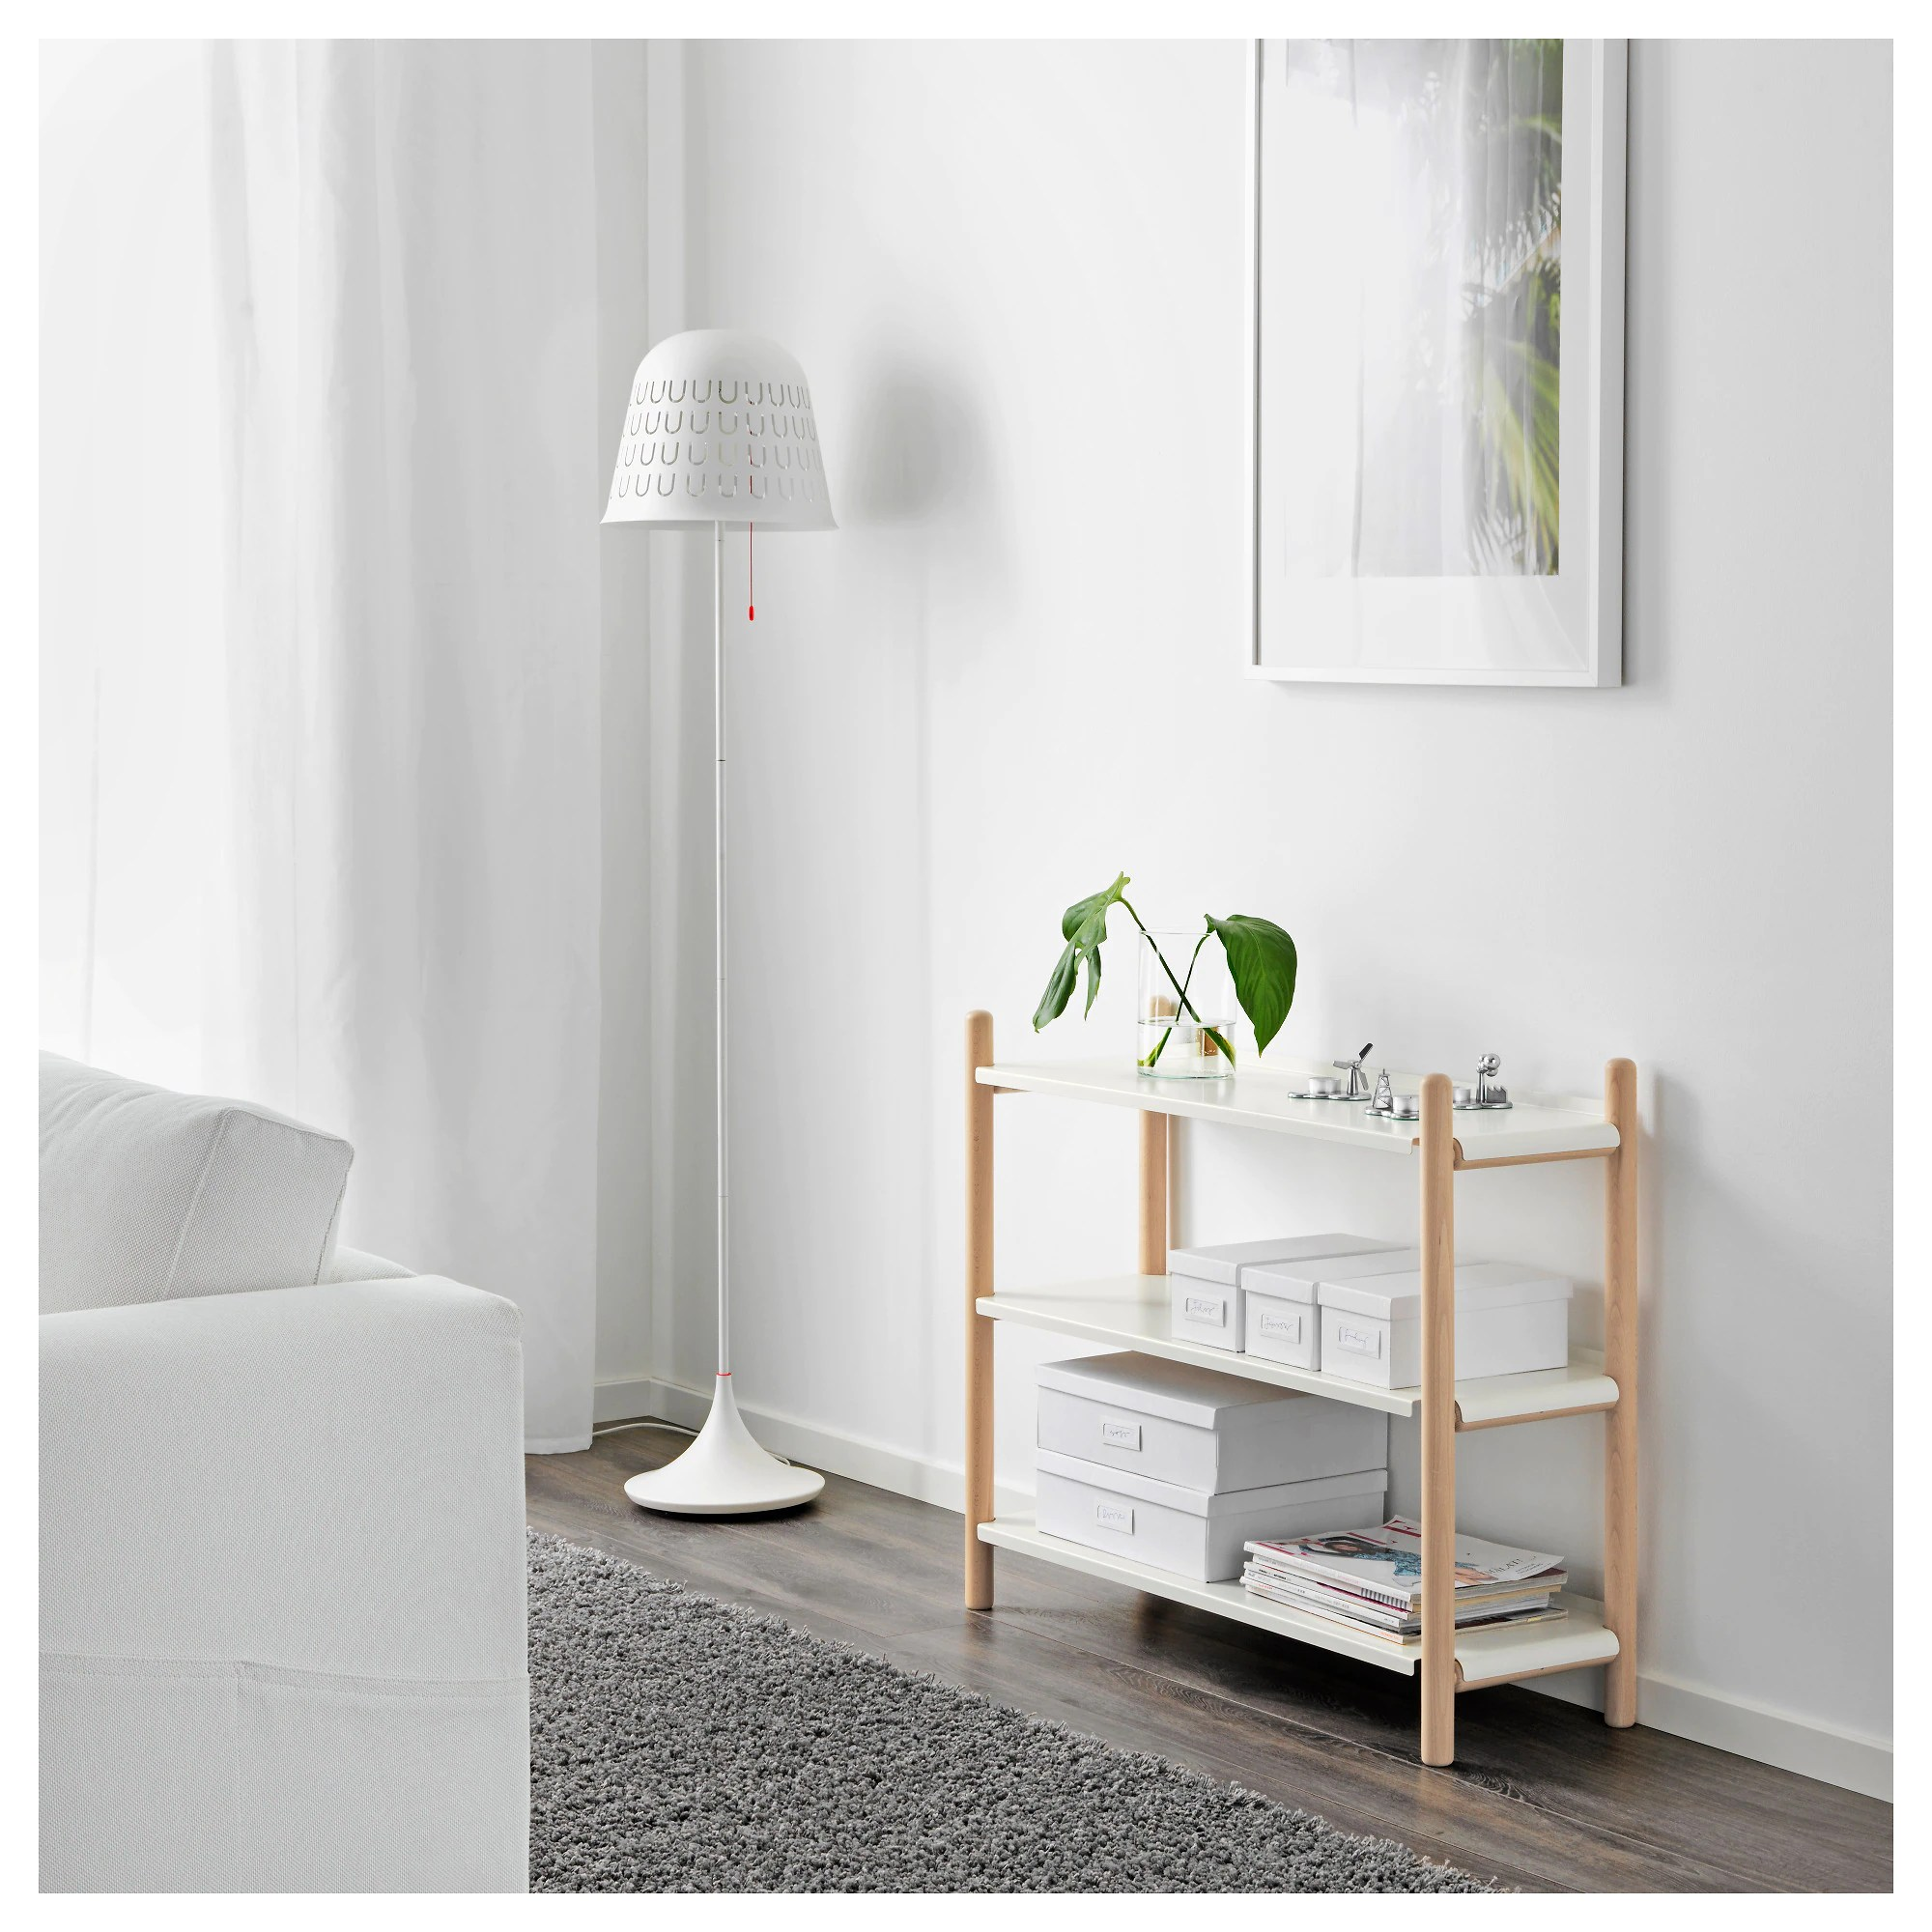 Ikea Ps Sofa 2017 Ikea Ps 2017 Shelf Unit Beech White